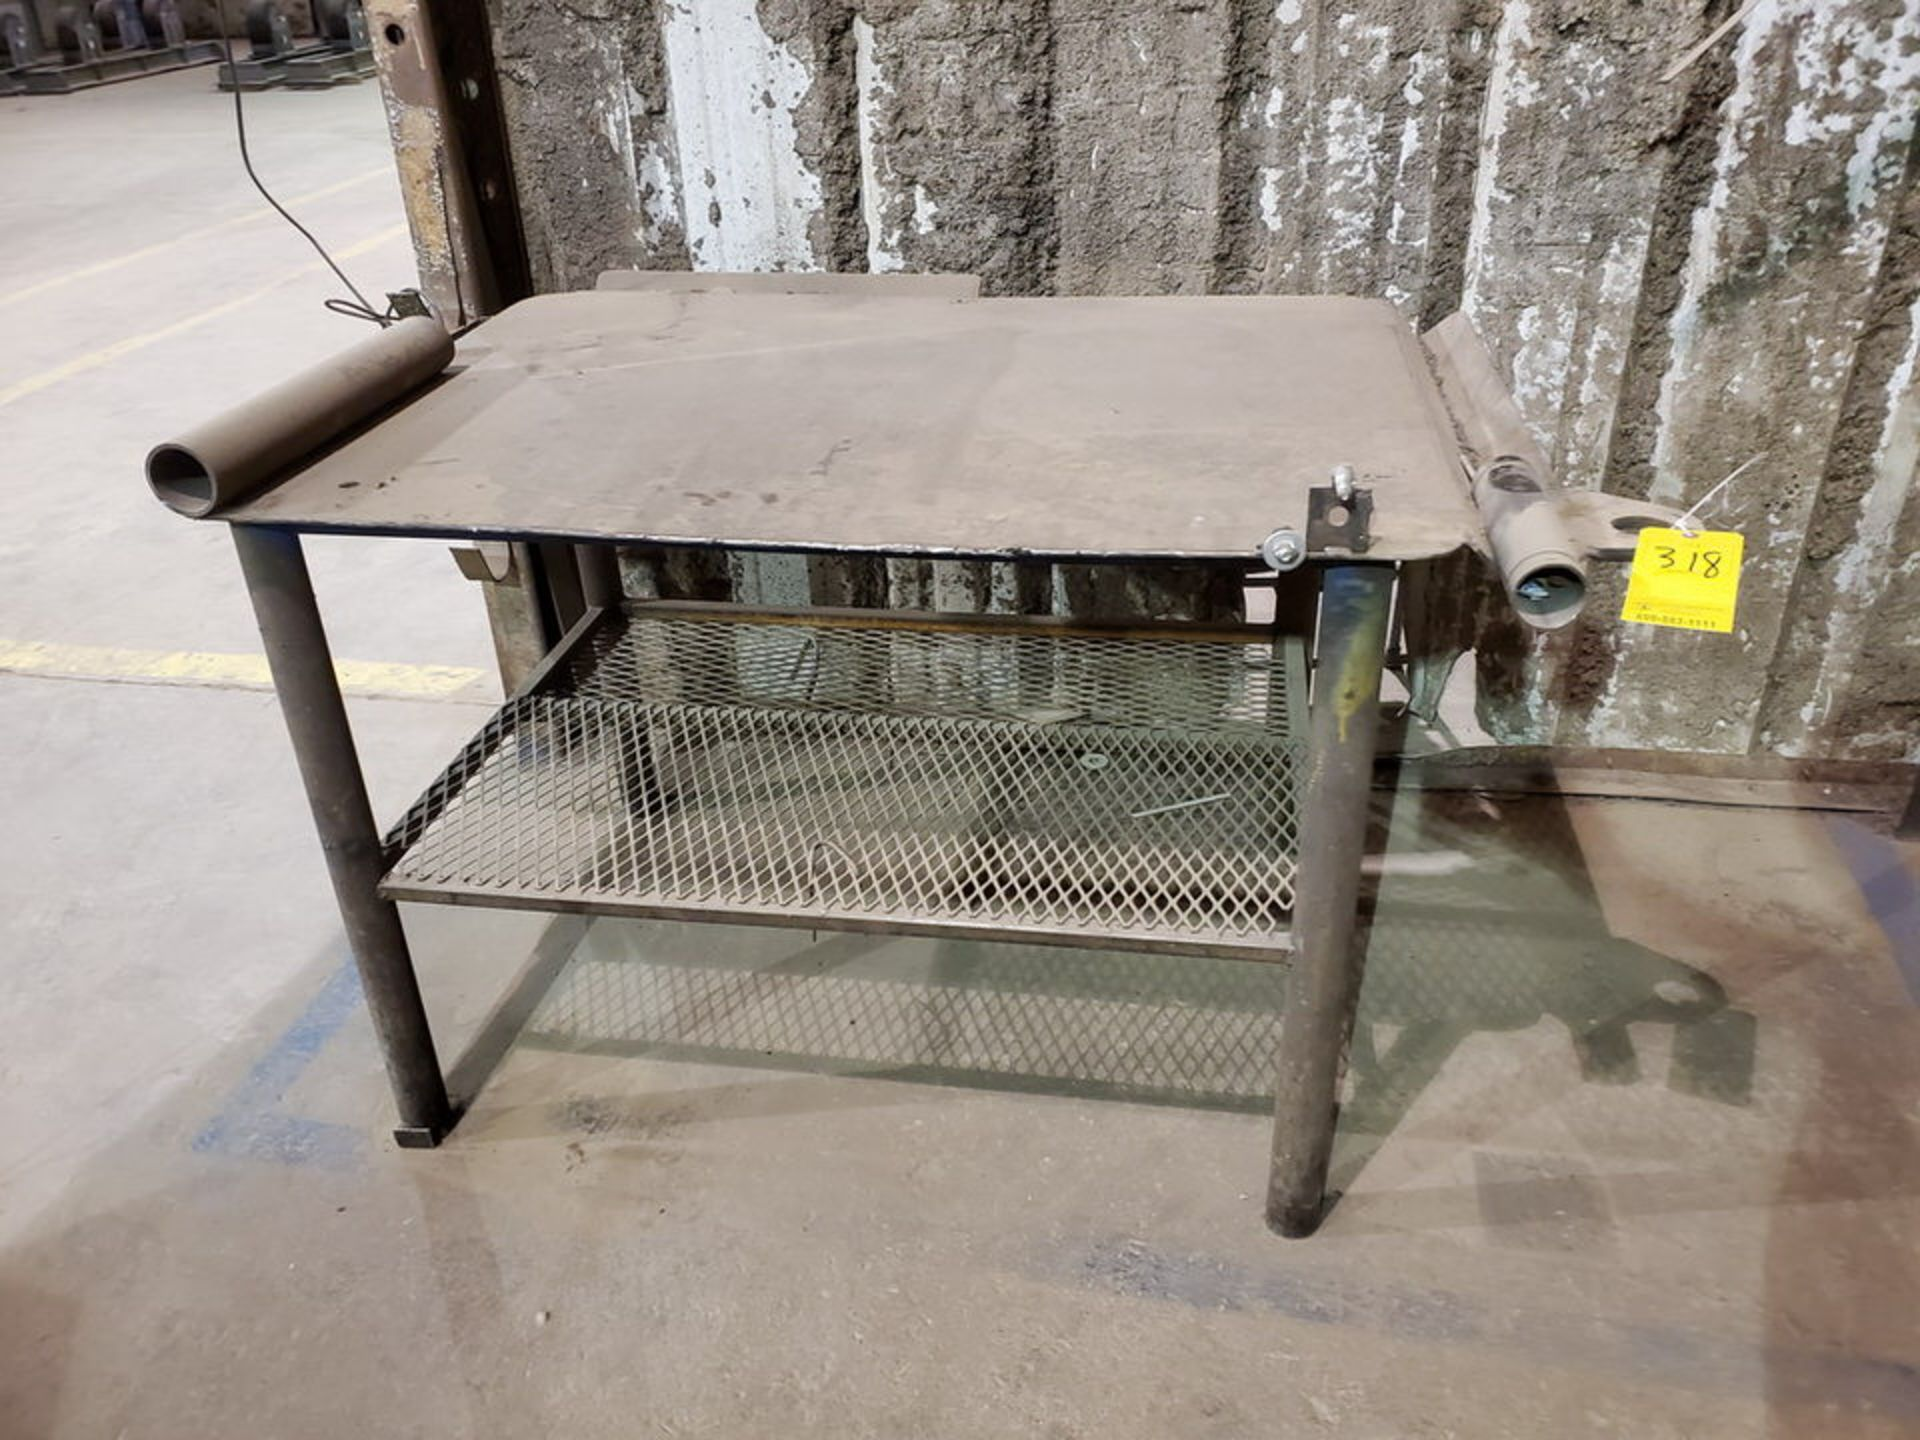 """Stl Welding Table 40"""" x 53"""" x 34""""H - Image 2 of 4"""